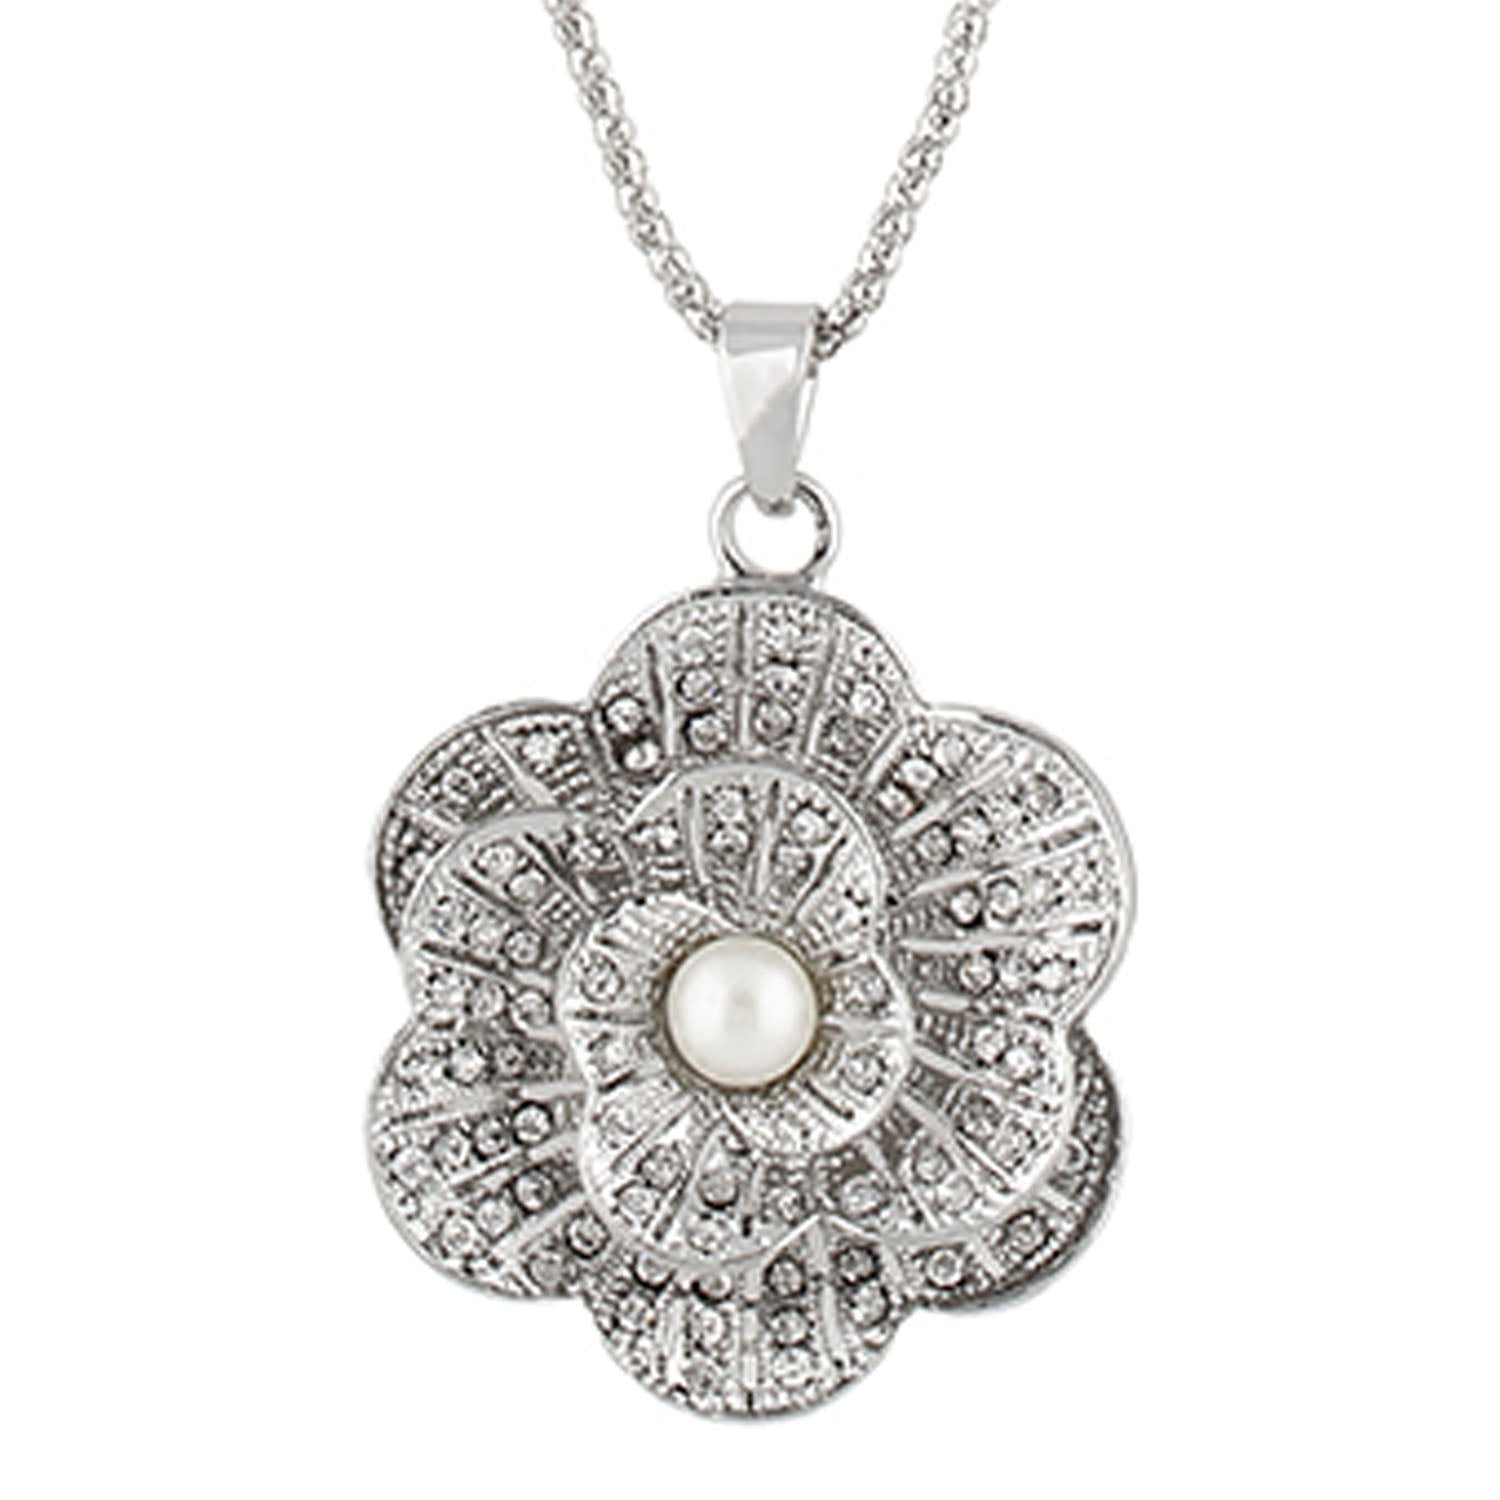 Grey Colour Floral Shape Alloy Pendant with Chain for Girls and Women